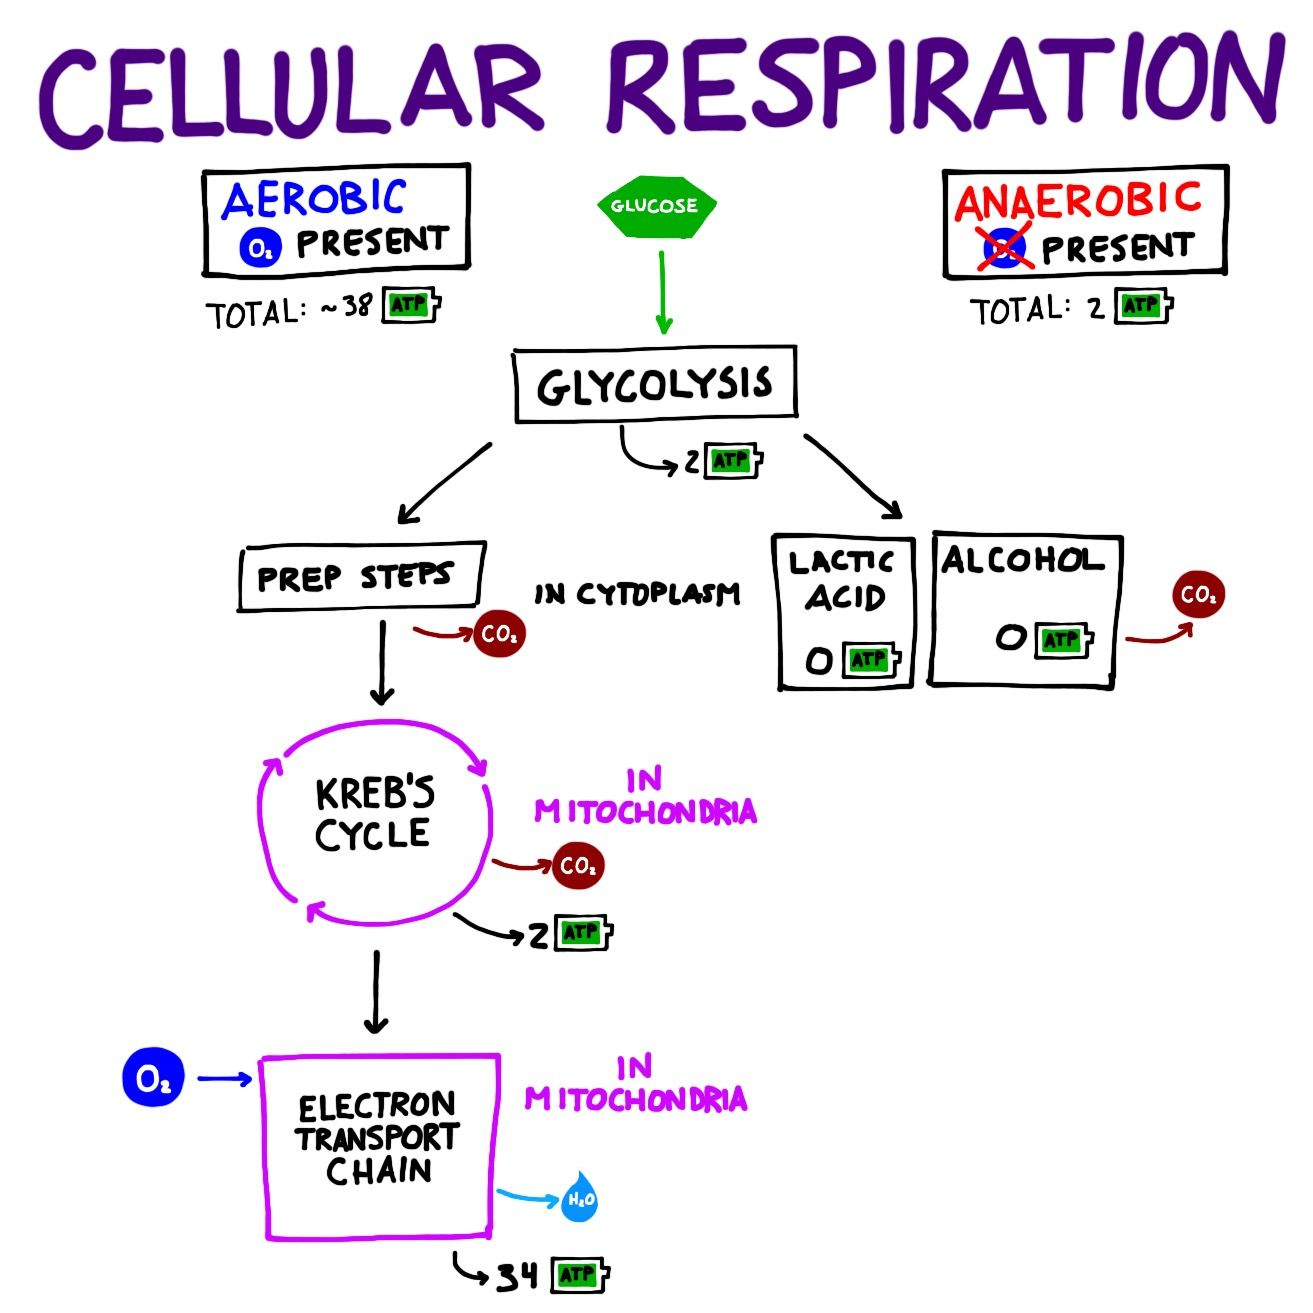 Overview of the major steps of cellular respiration glycolysis overview of the major steps of cellular respiration glycolysis krebs cycle electron transport chain cellularrespiration biochemistry science ccuart Choice Image